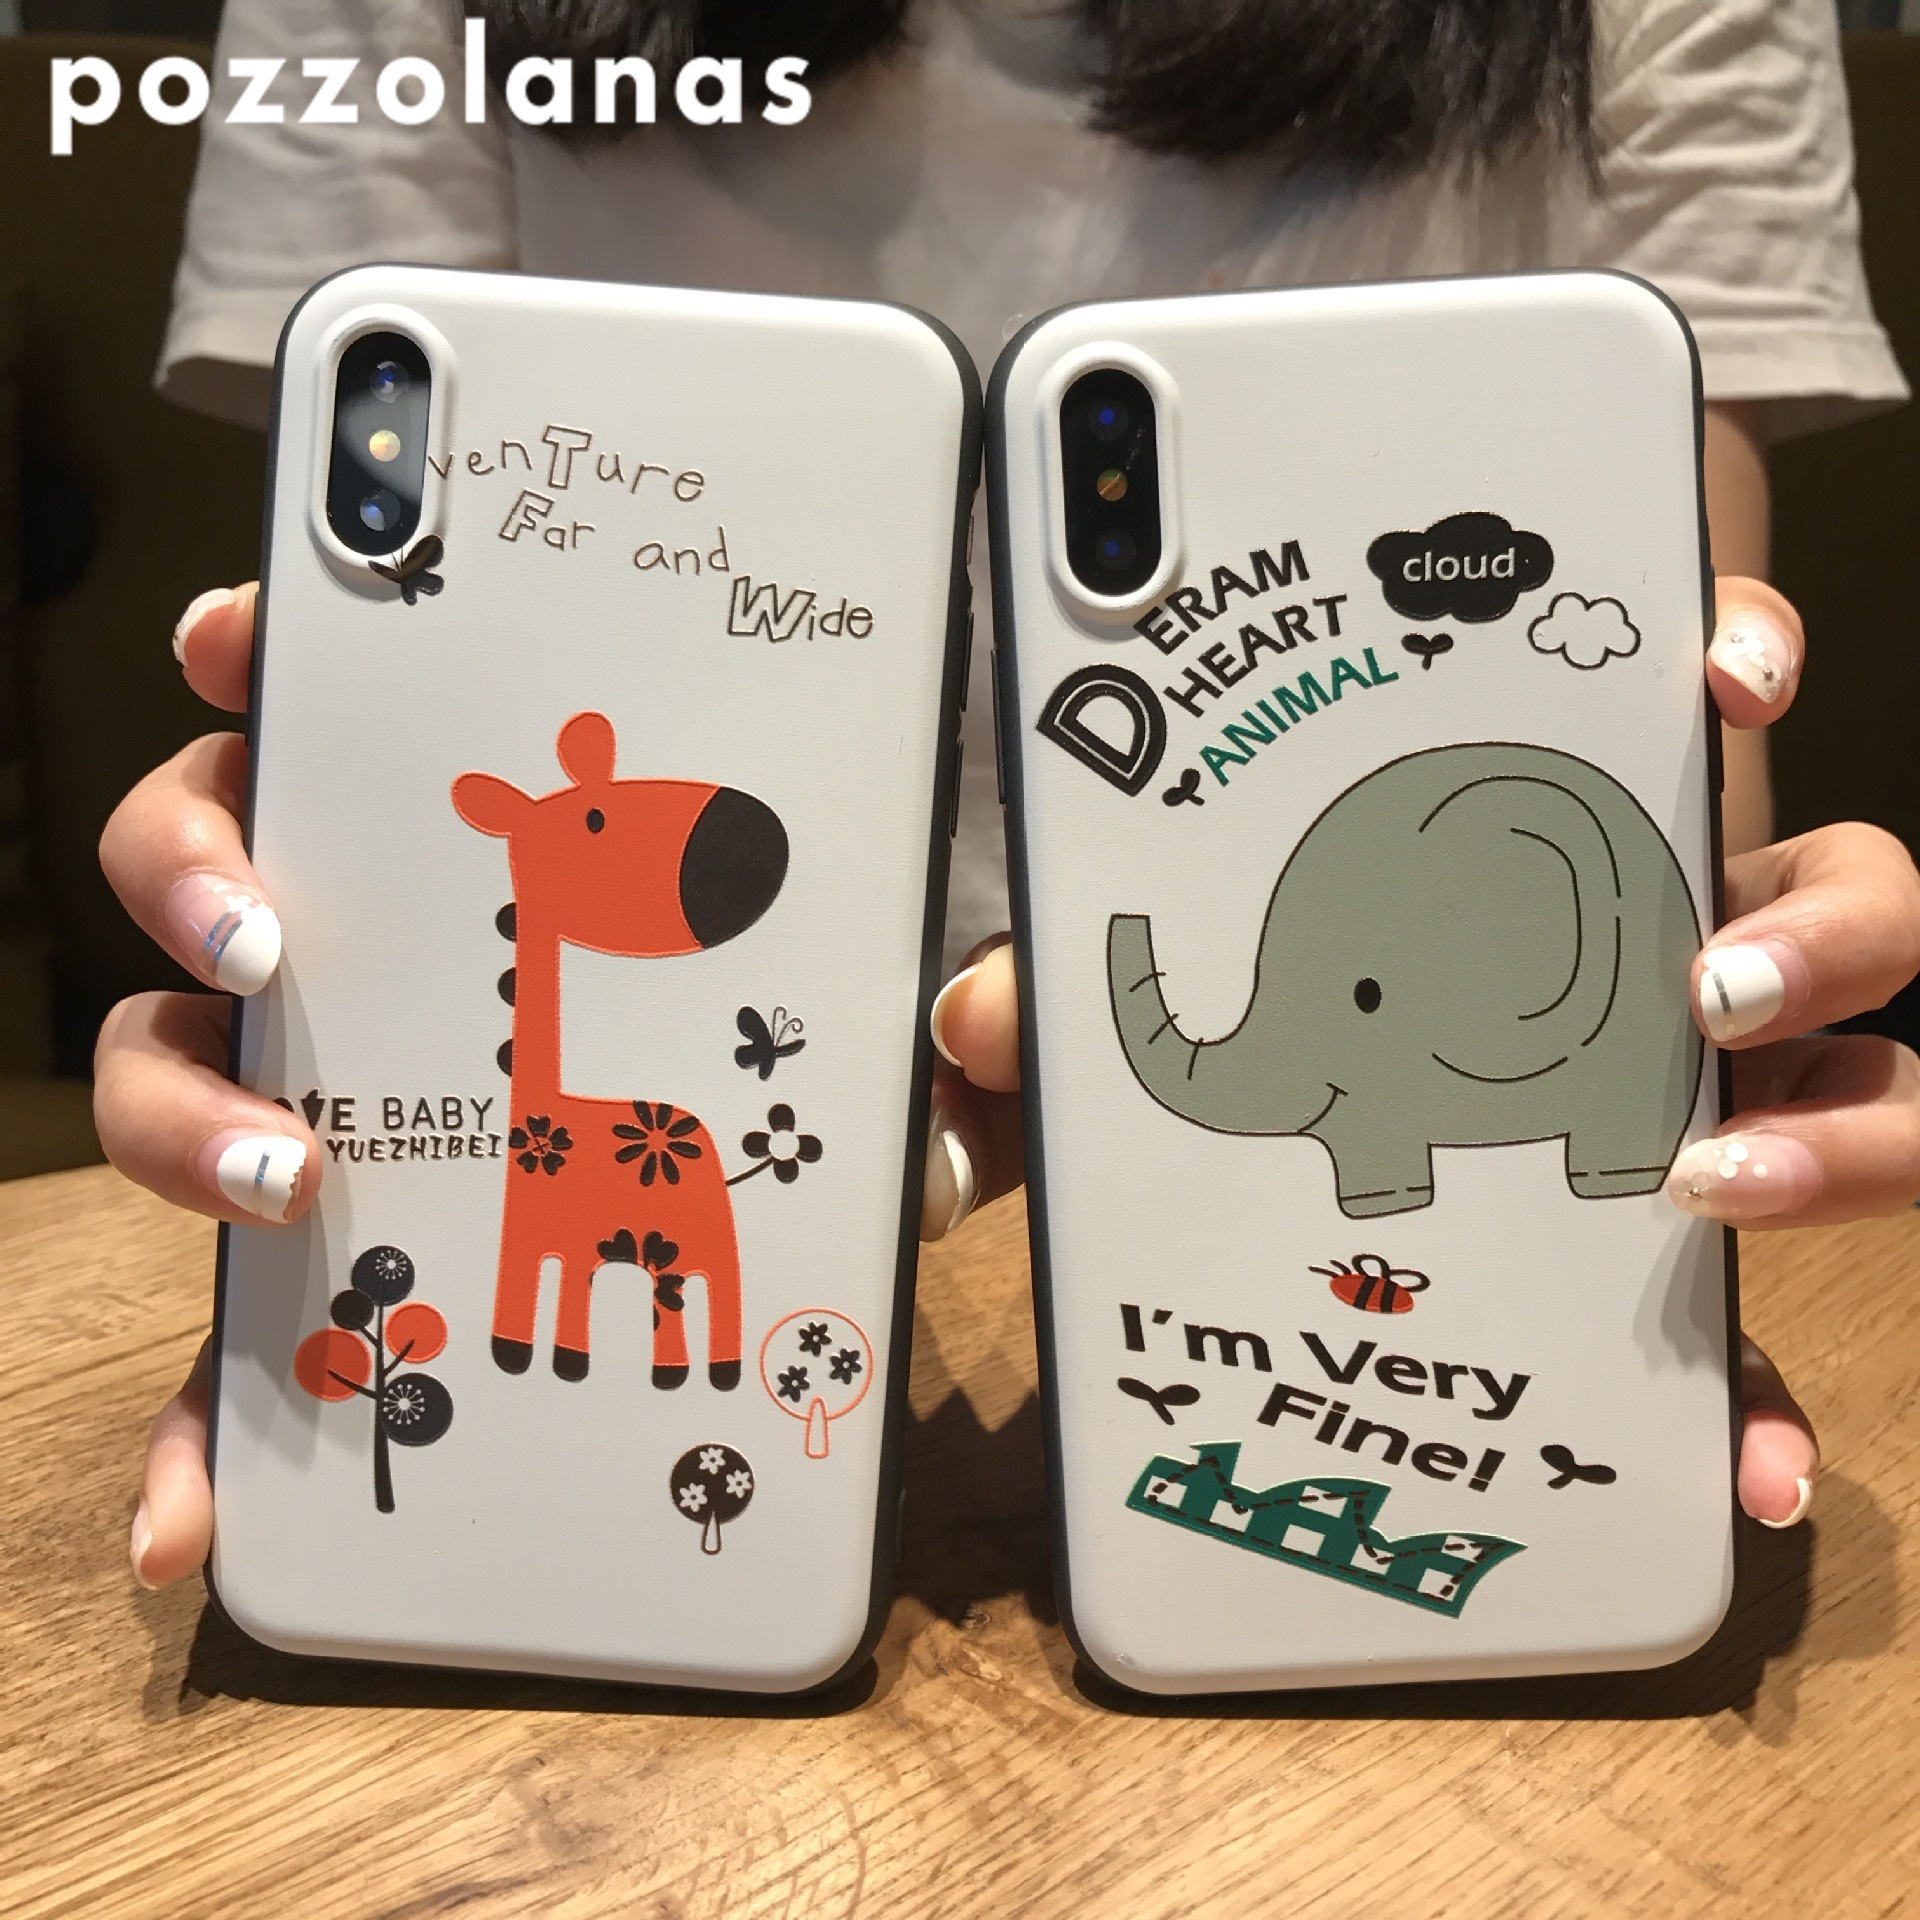 Pozzolanas Cartoon Giraffe 6s Protect Phone Vivo Series 7plus Soft Shell Iphone 8 X 7 Case in Fitted Cases from Cellphones Telecommunications